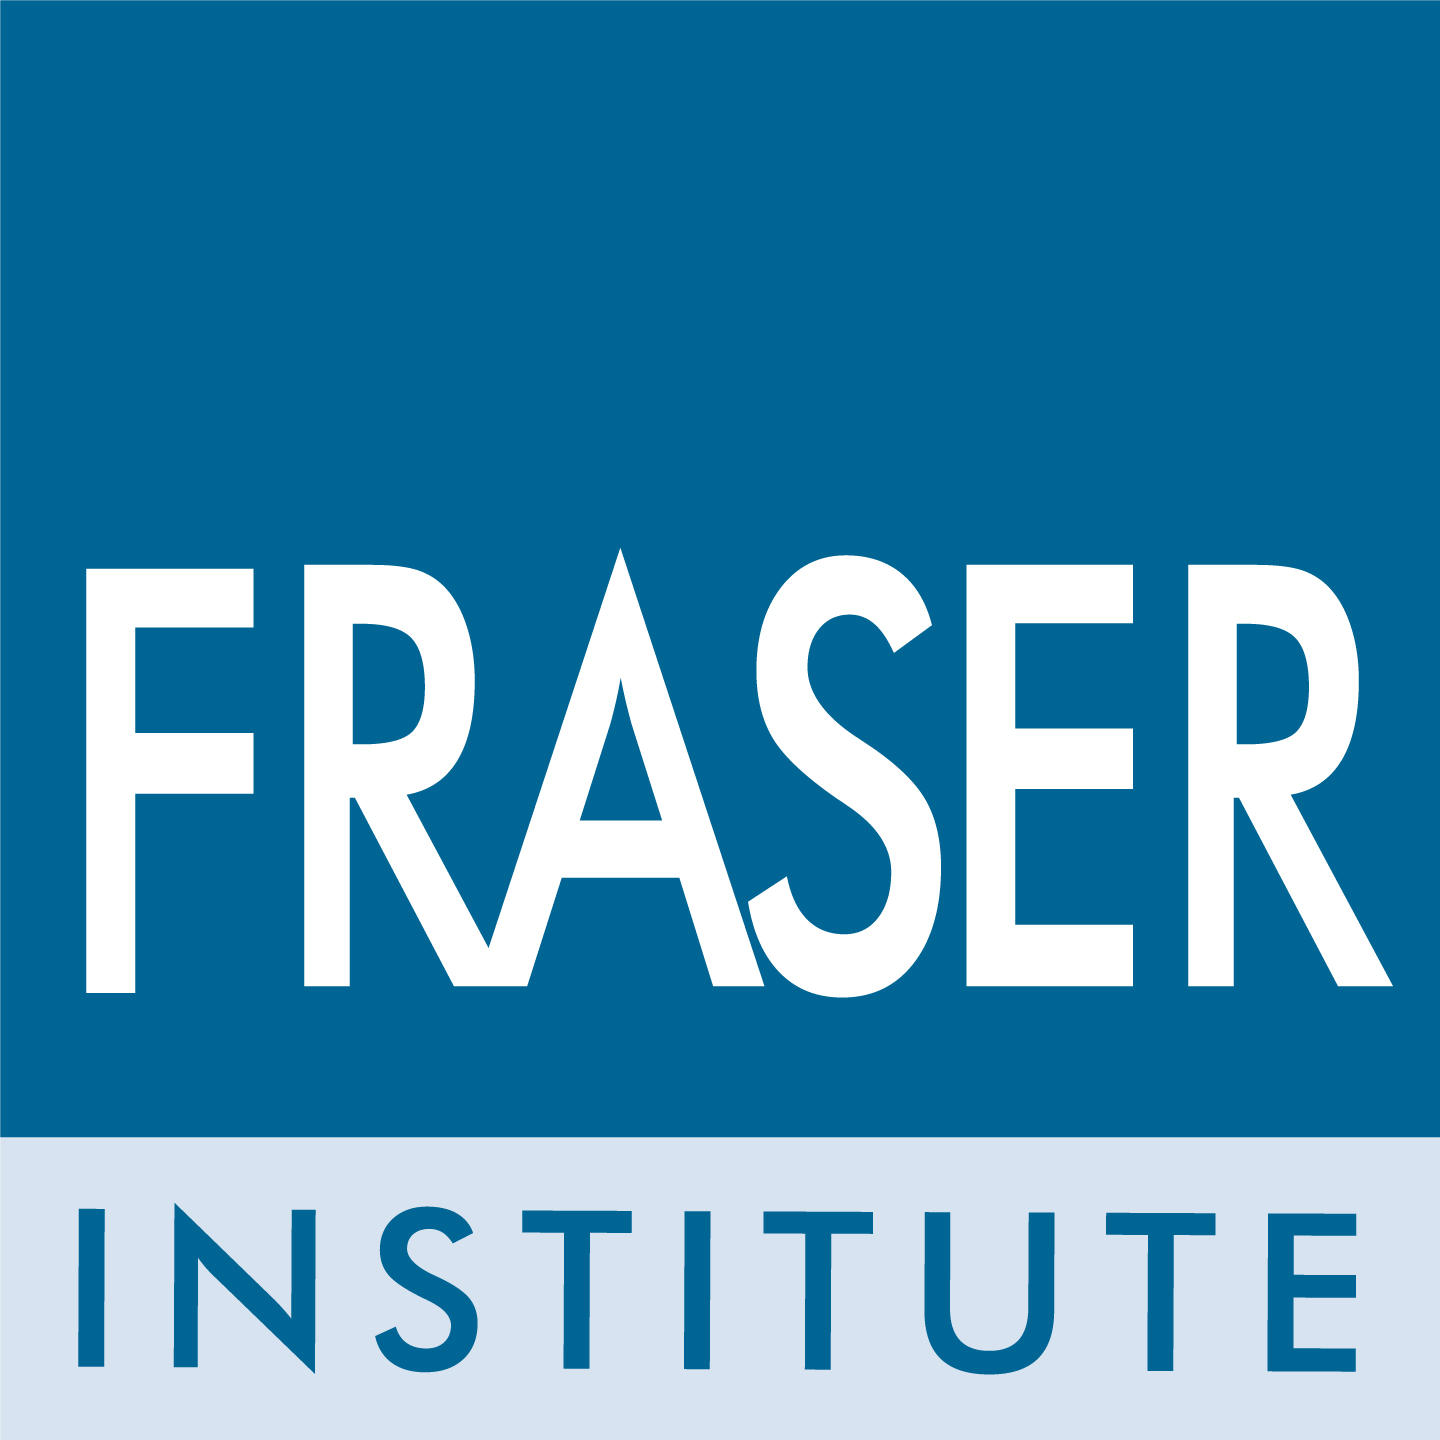 Fraser Institute News Release: Western Australia top-ranked jurisdiction in global mining survey while Canada falters